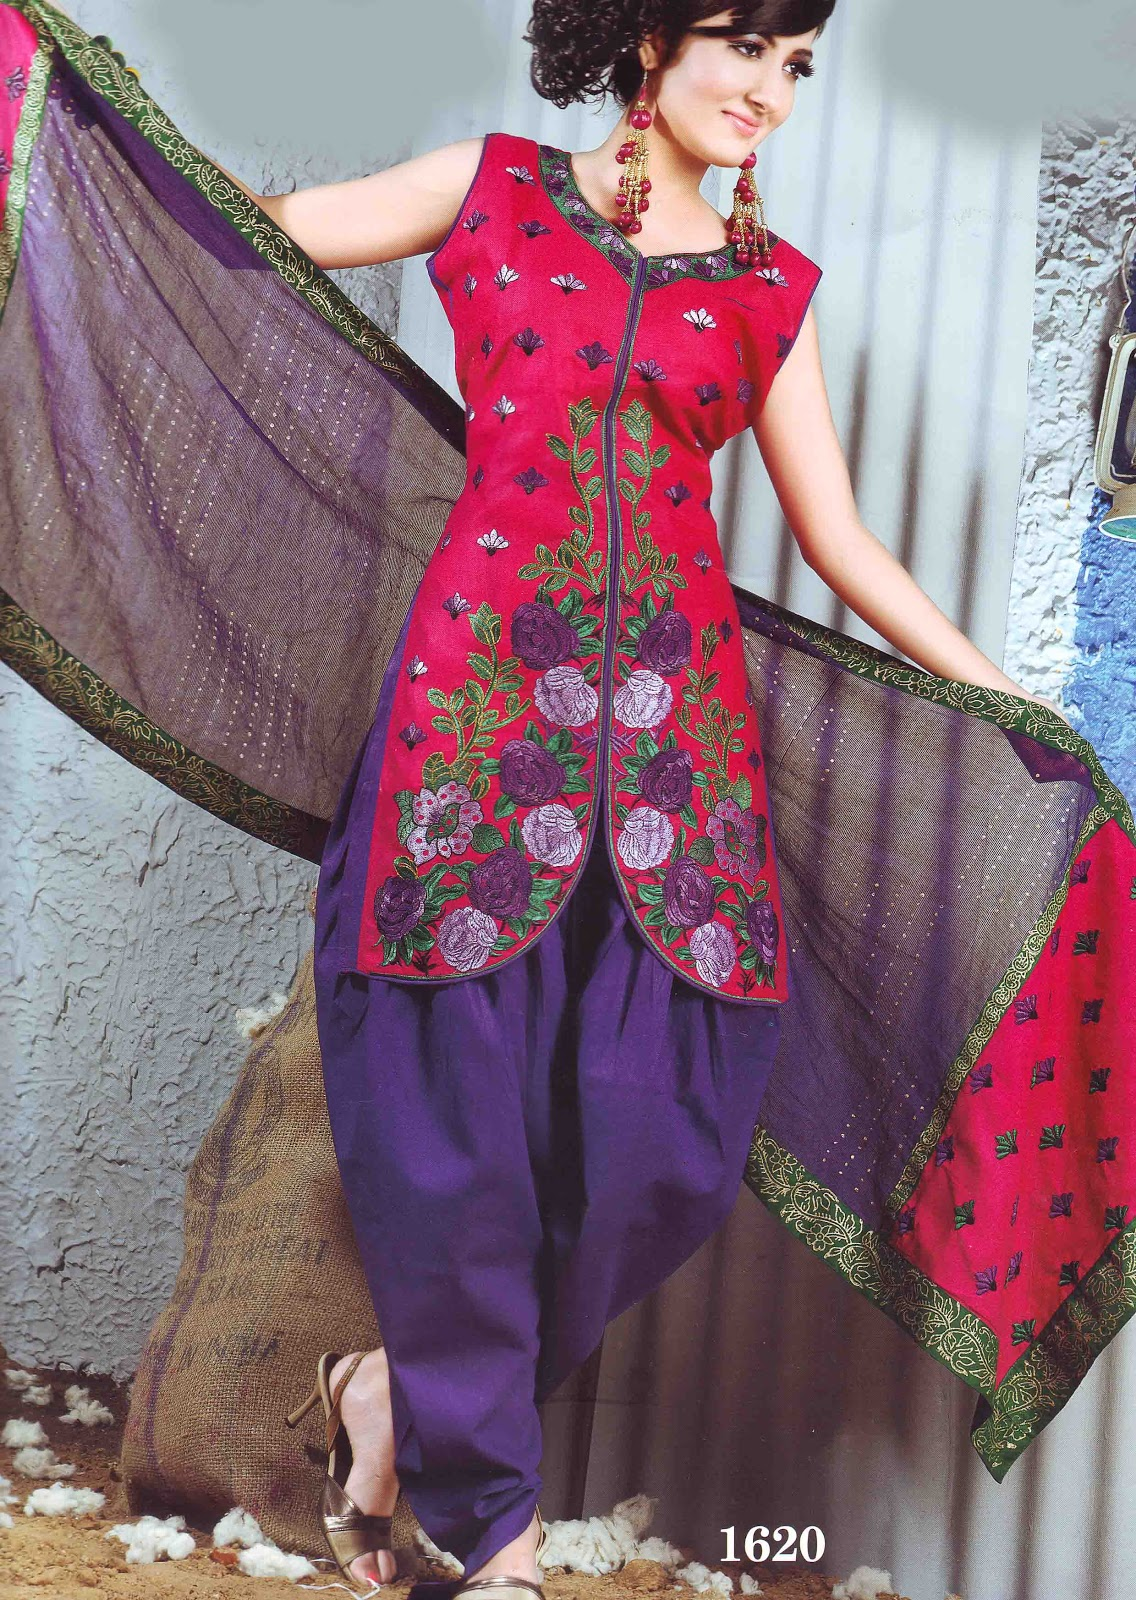 Stunning Dark Pink And Violet Combination Unstiched Salwar Suit Looks Very Beautiful Trendy The Top Having Full Embroidery Work Which